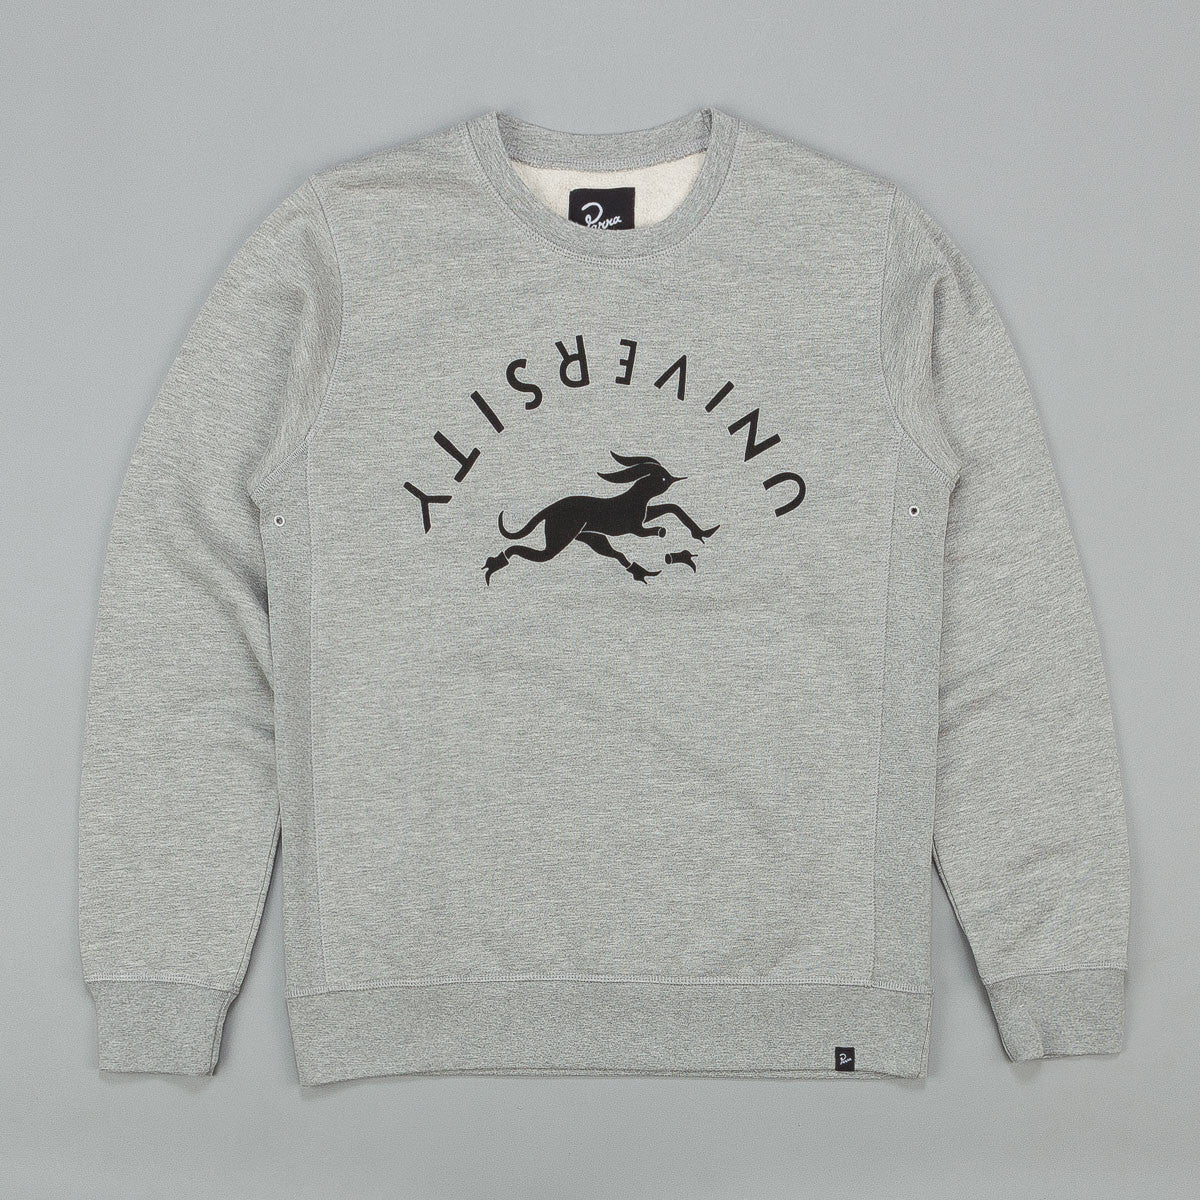 Parra Detached University Crew Neck Sweatshirt